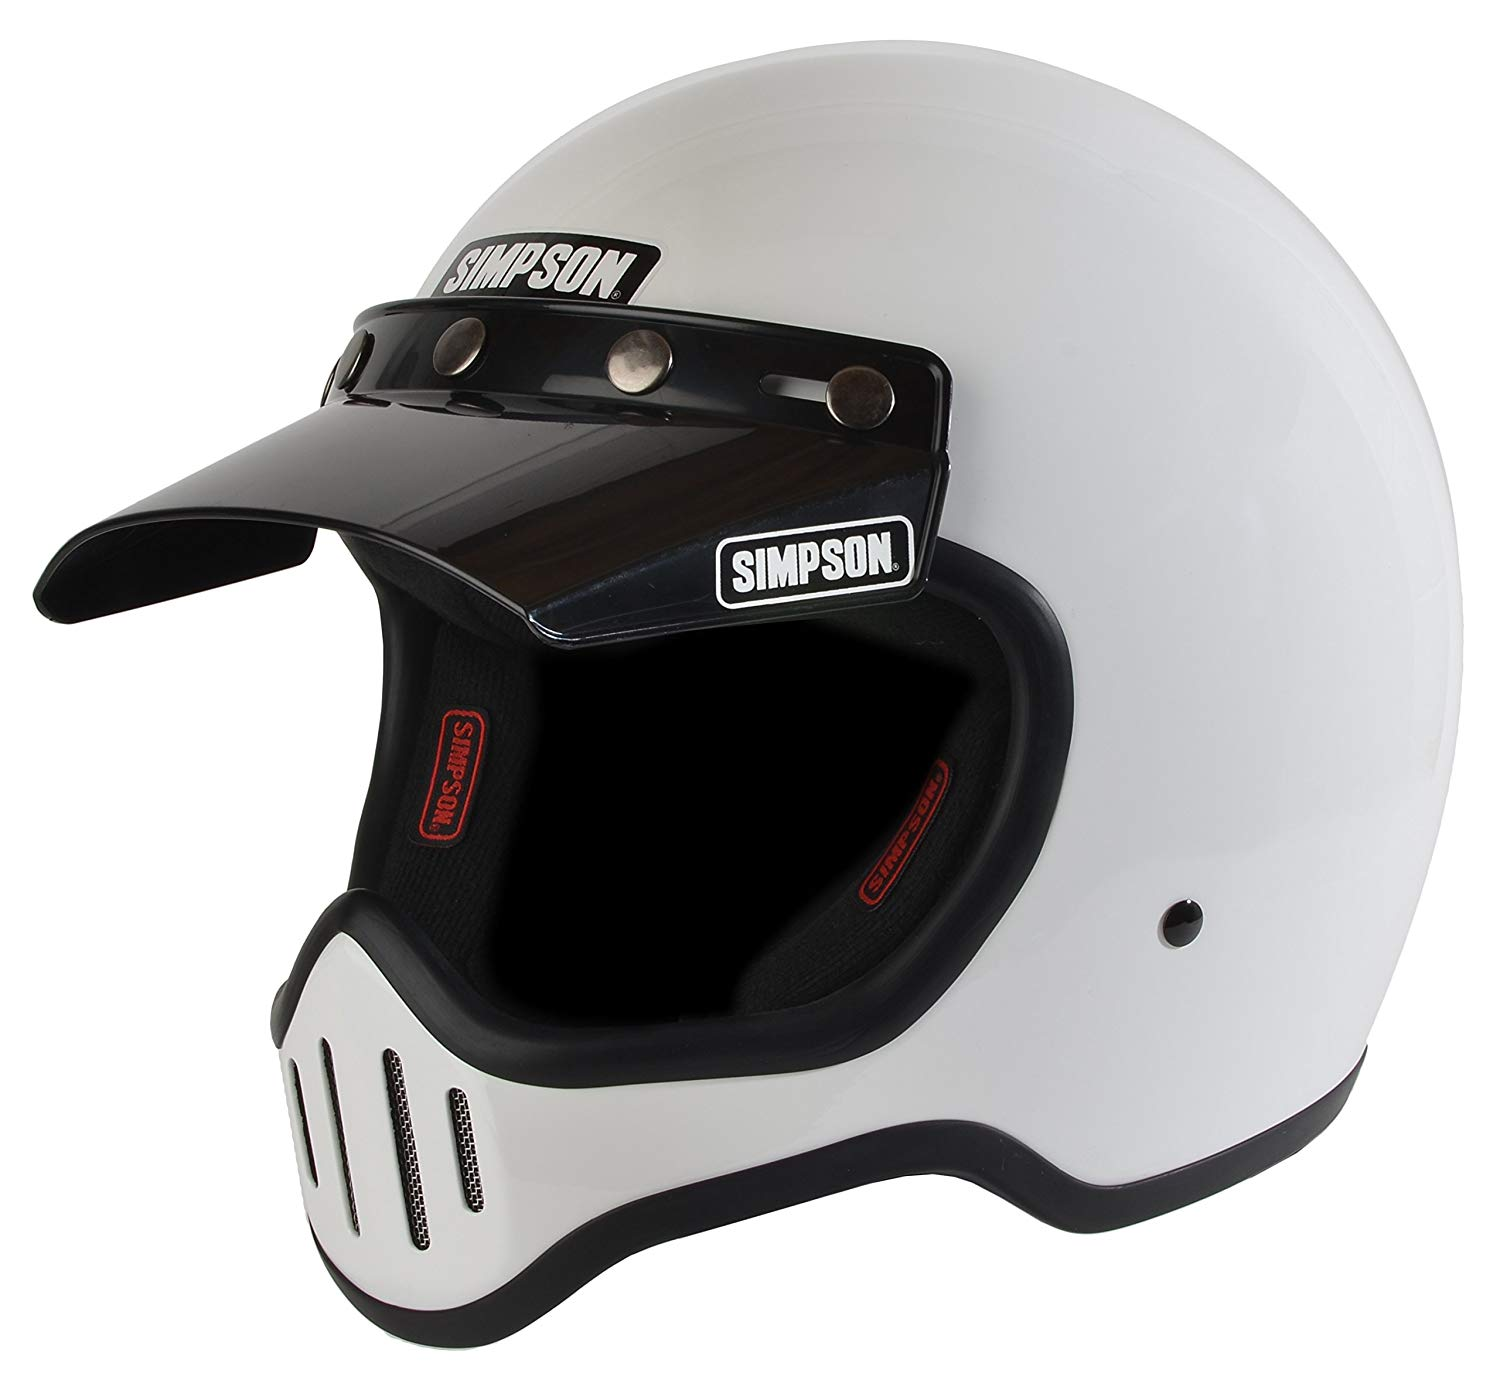 Simpson M50 DOT Helmet